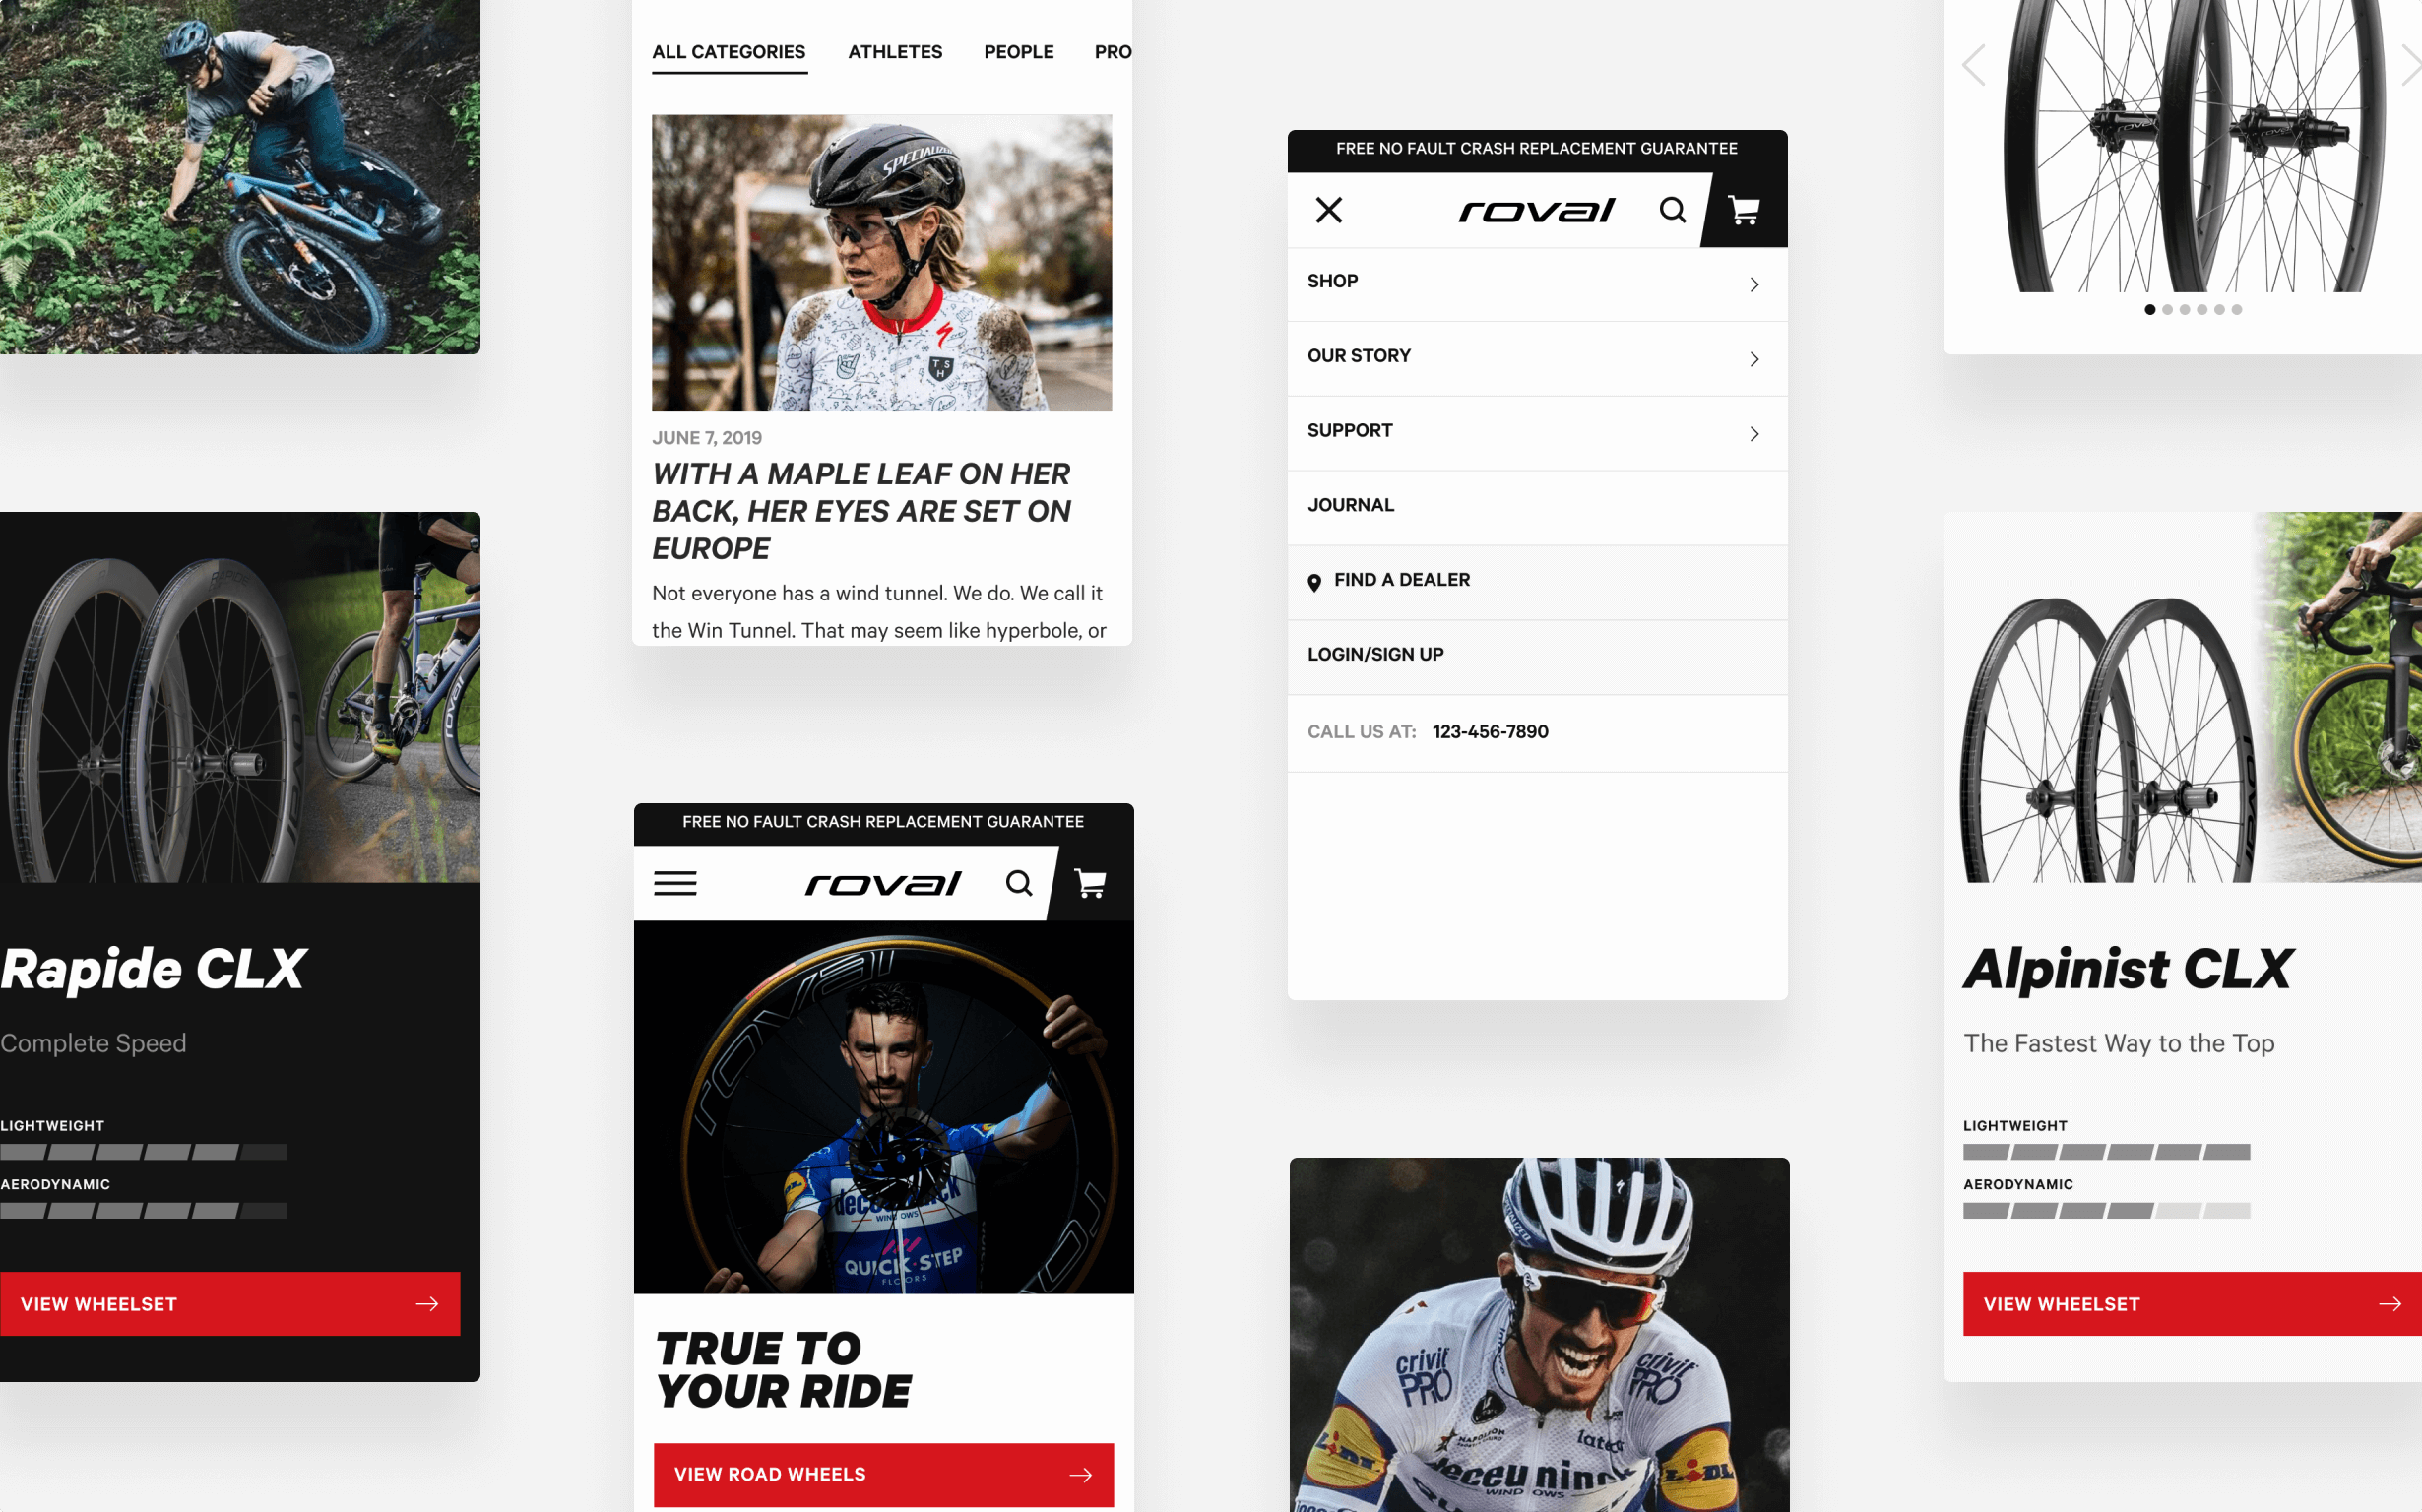 A collage of Roval's Journal and product pages on mobile devices tell stories about people and products.